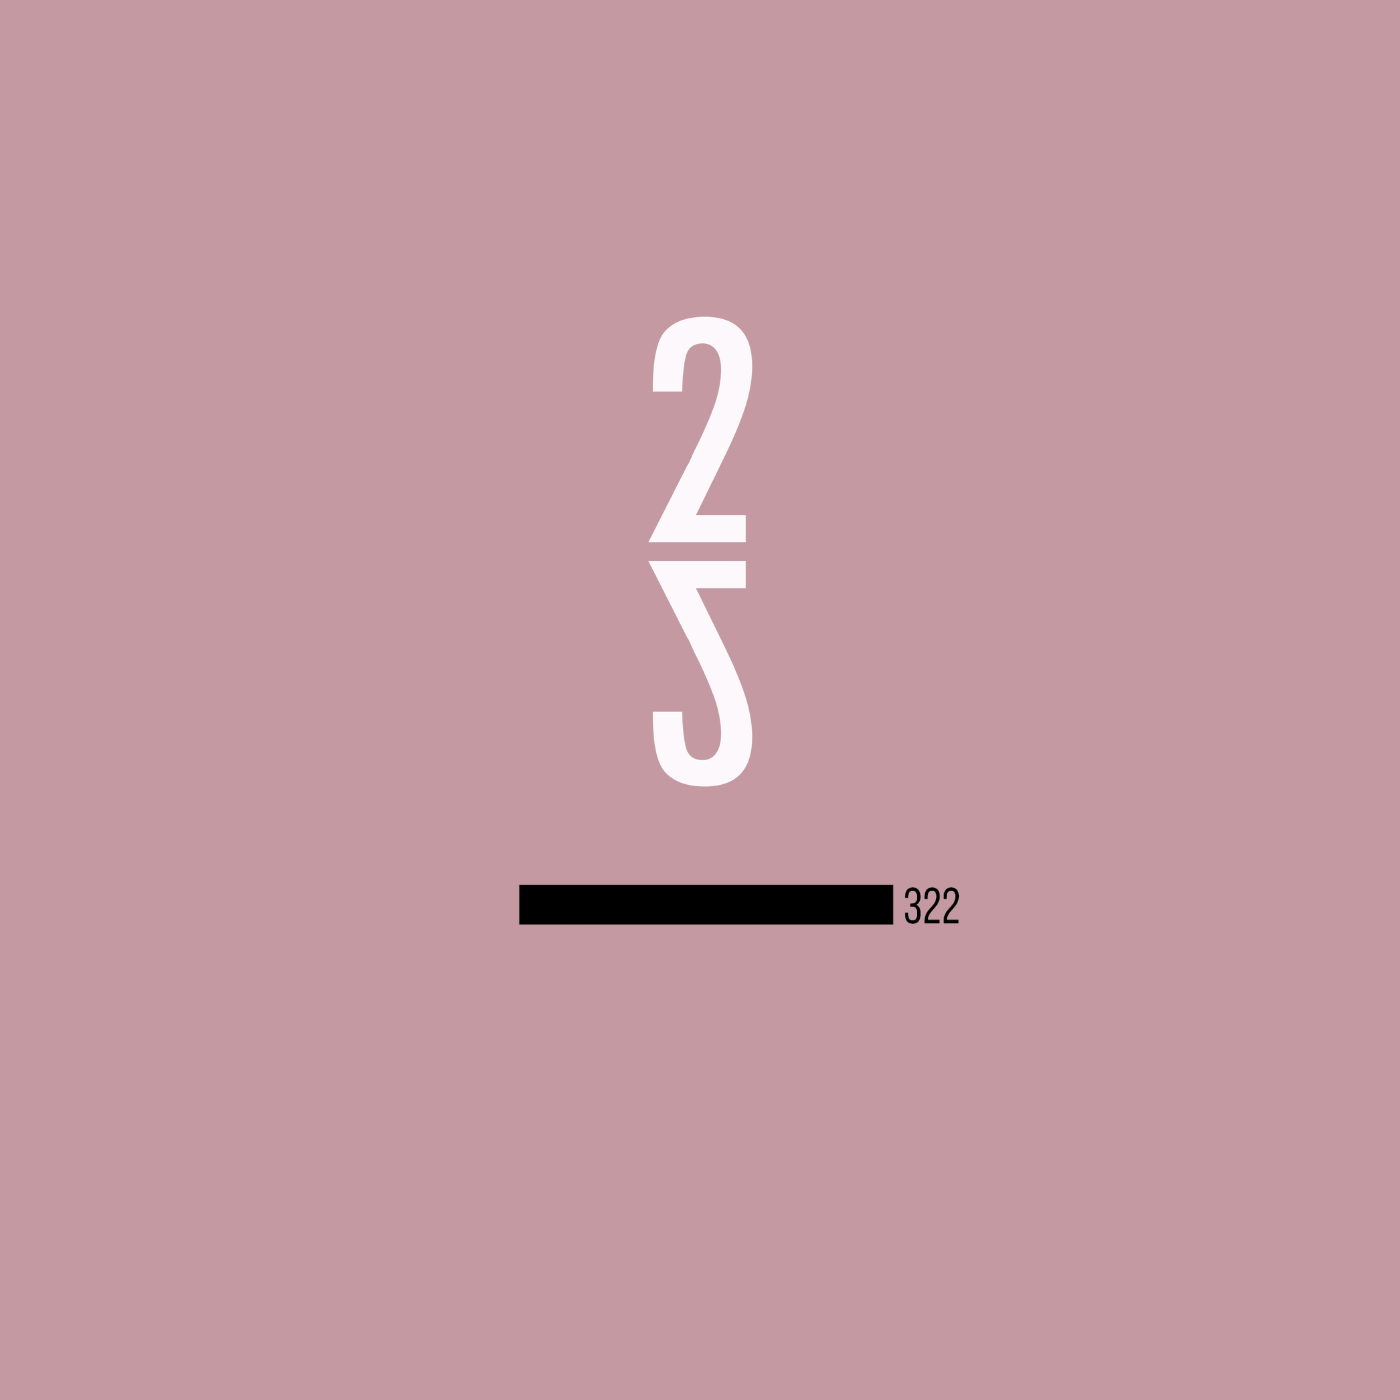 322 - Sophomore album release. November 23rd, 2018. Recorded at Studio Litho in Seattle, WA